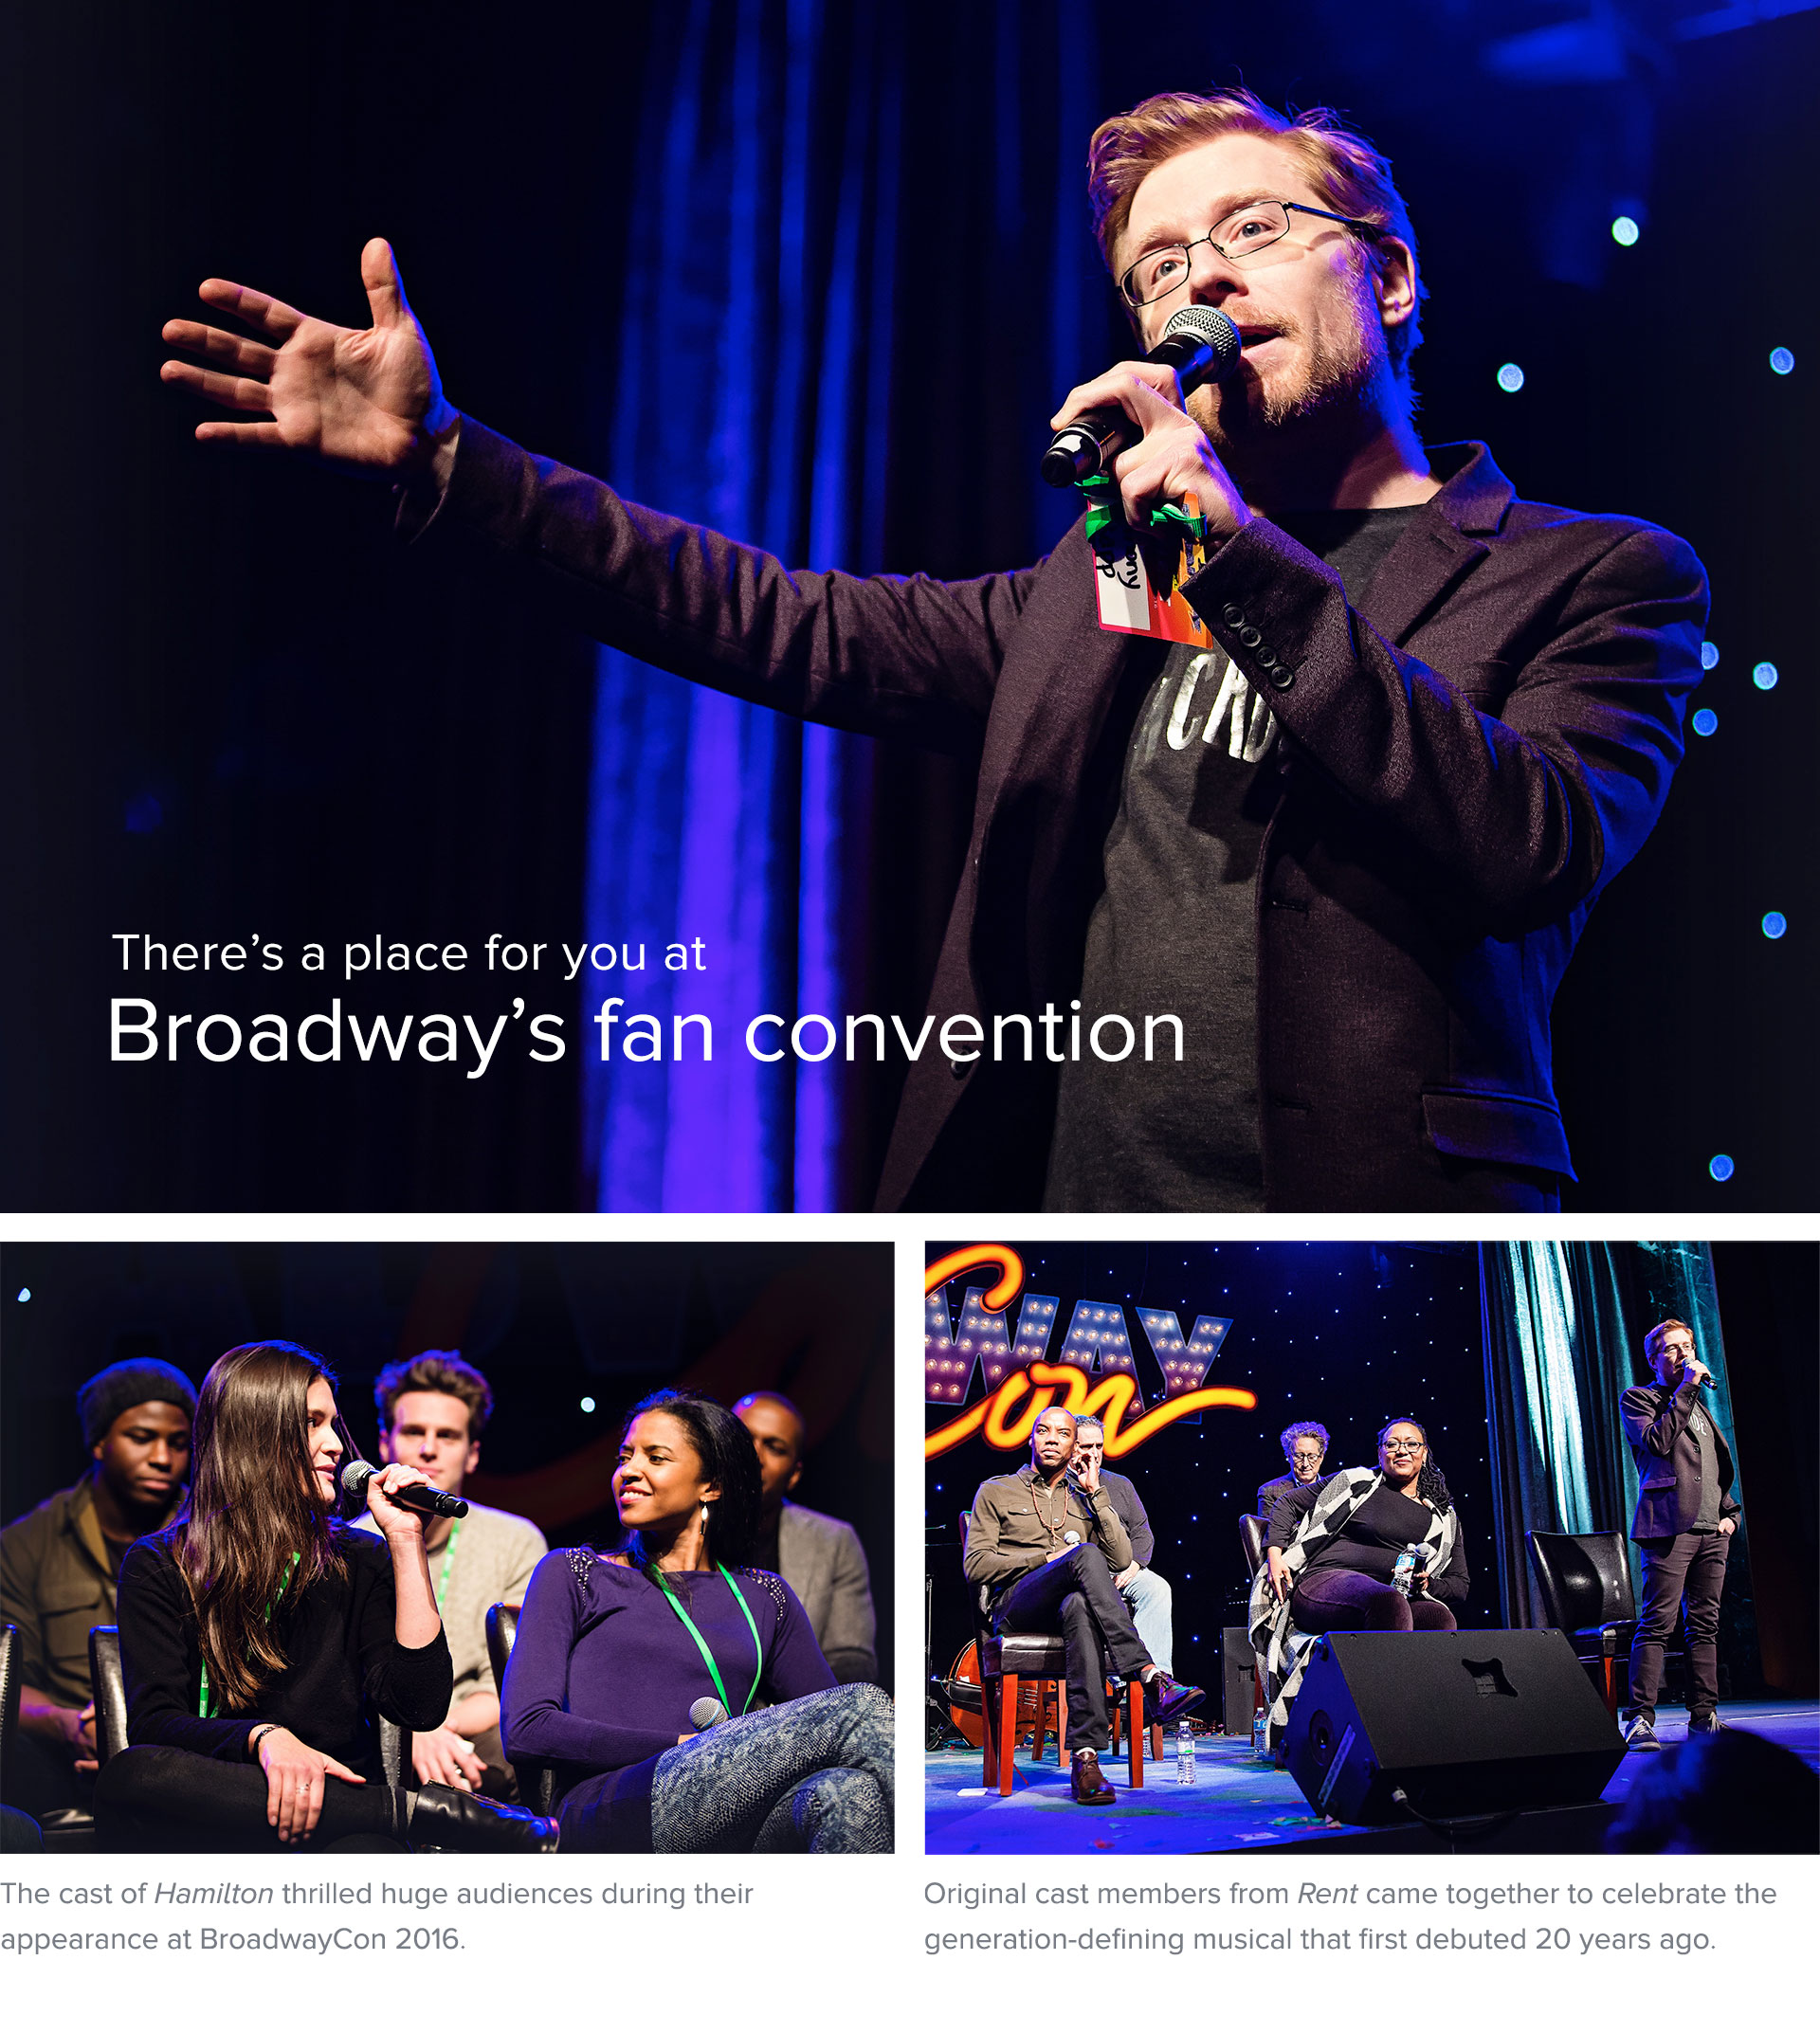 There's a place for you at Broadway's fan convention